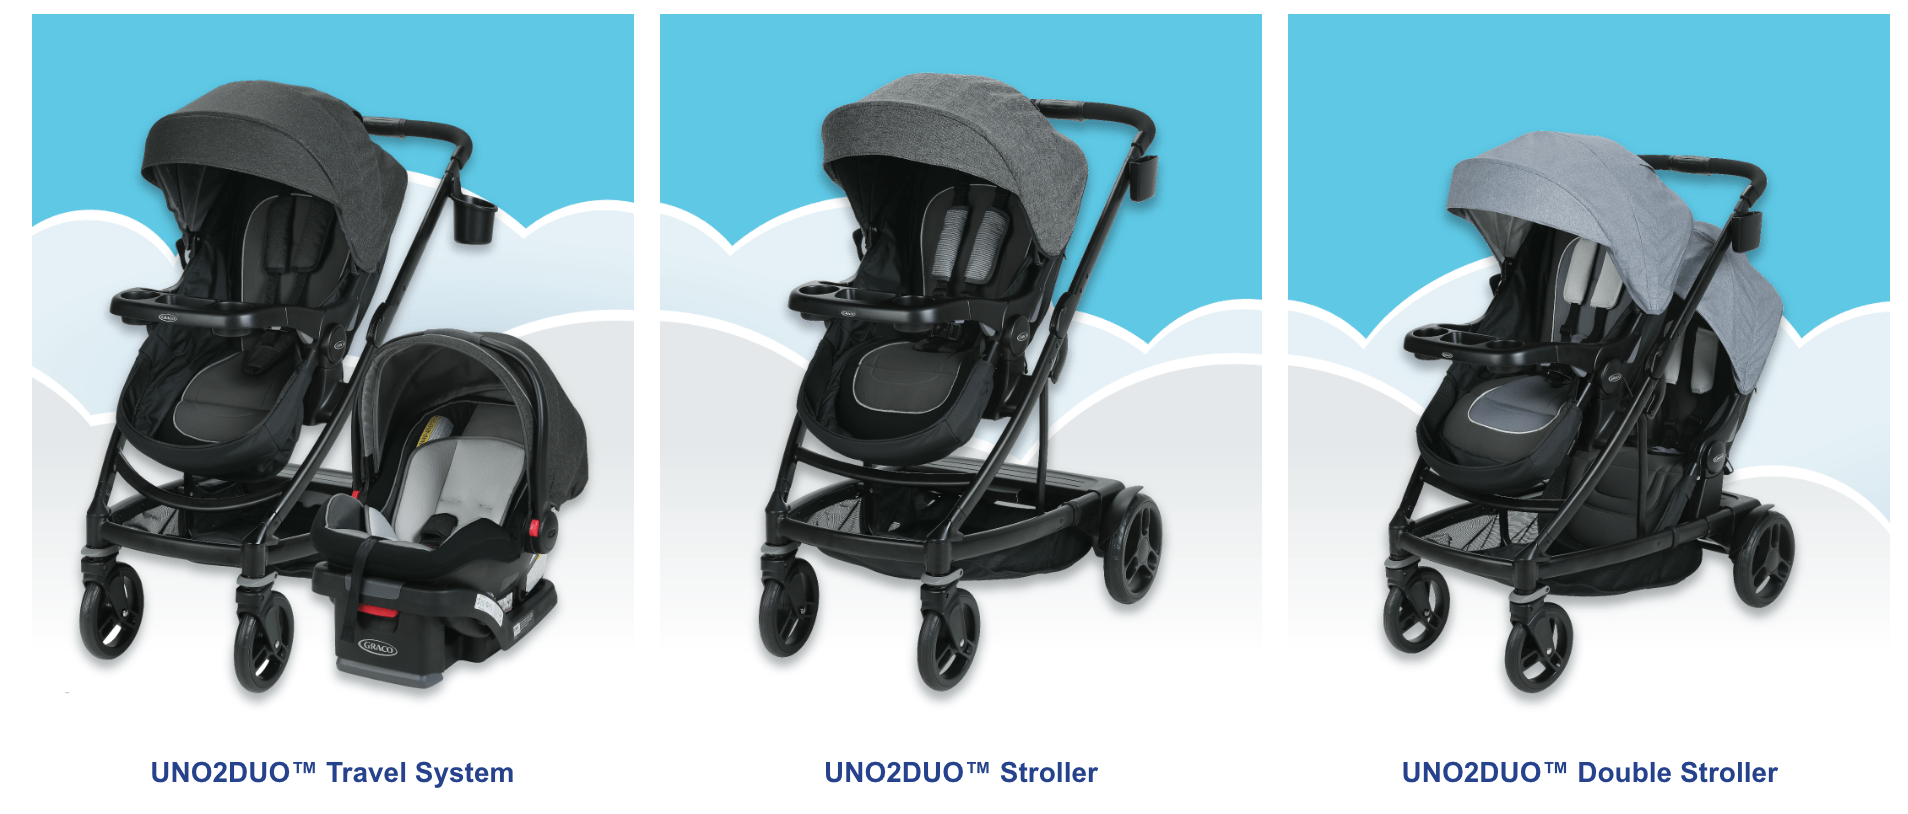 Uno2duo Stroller Graco Dream Big Sweepstakes Winners Win Uno2duo Travel System